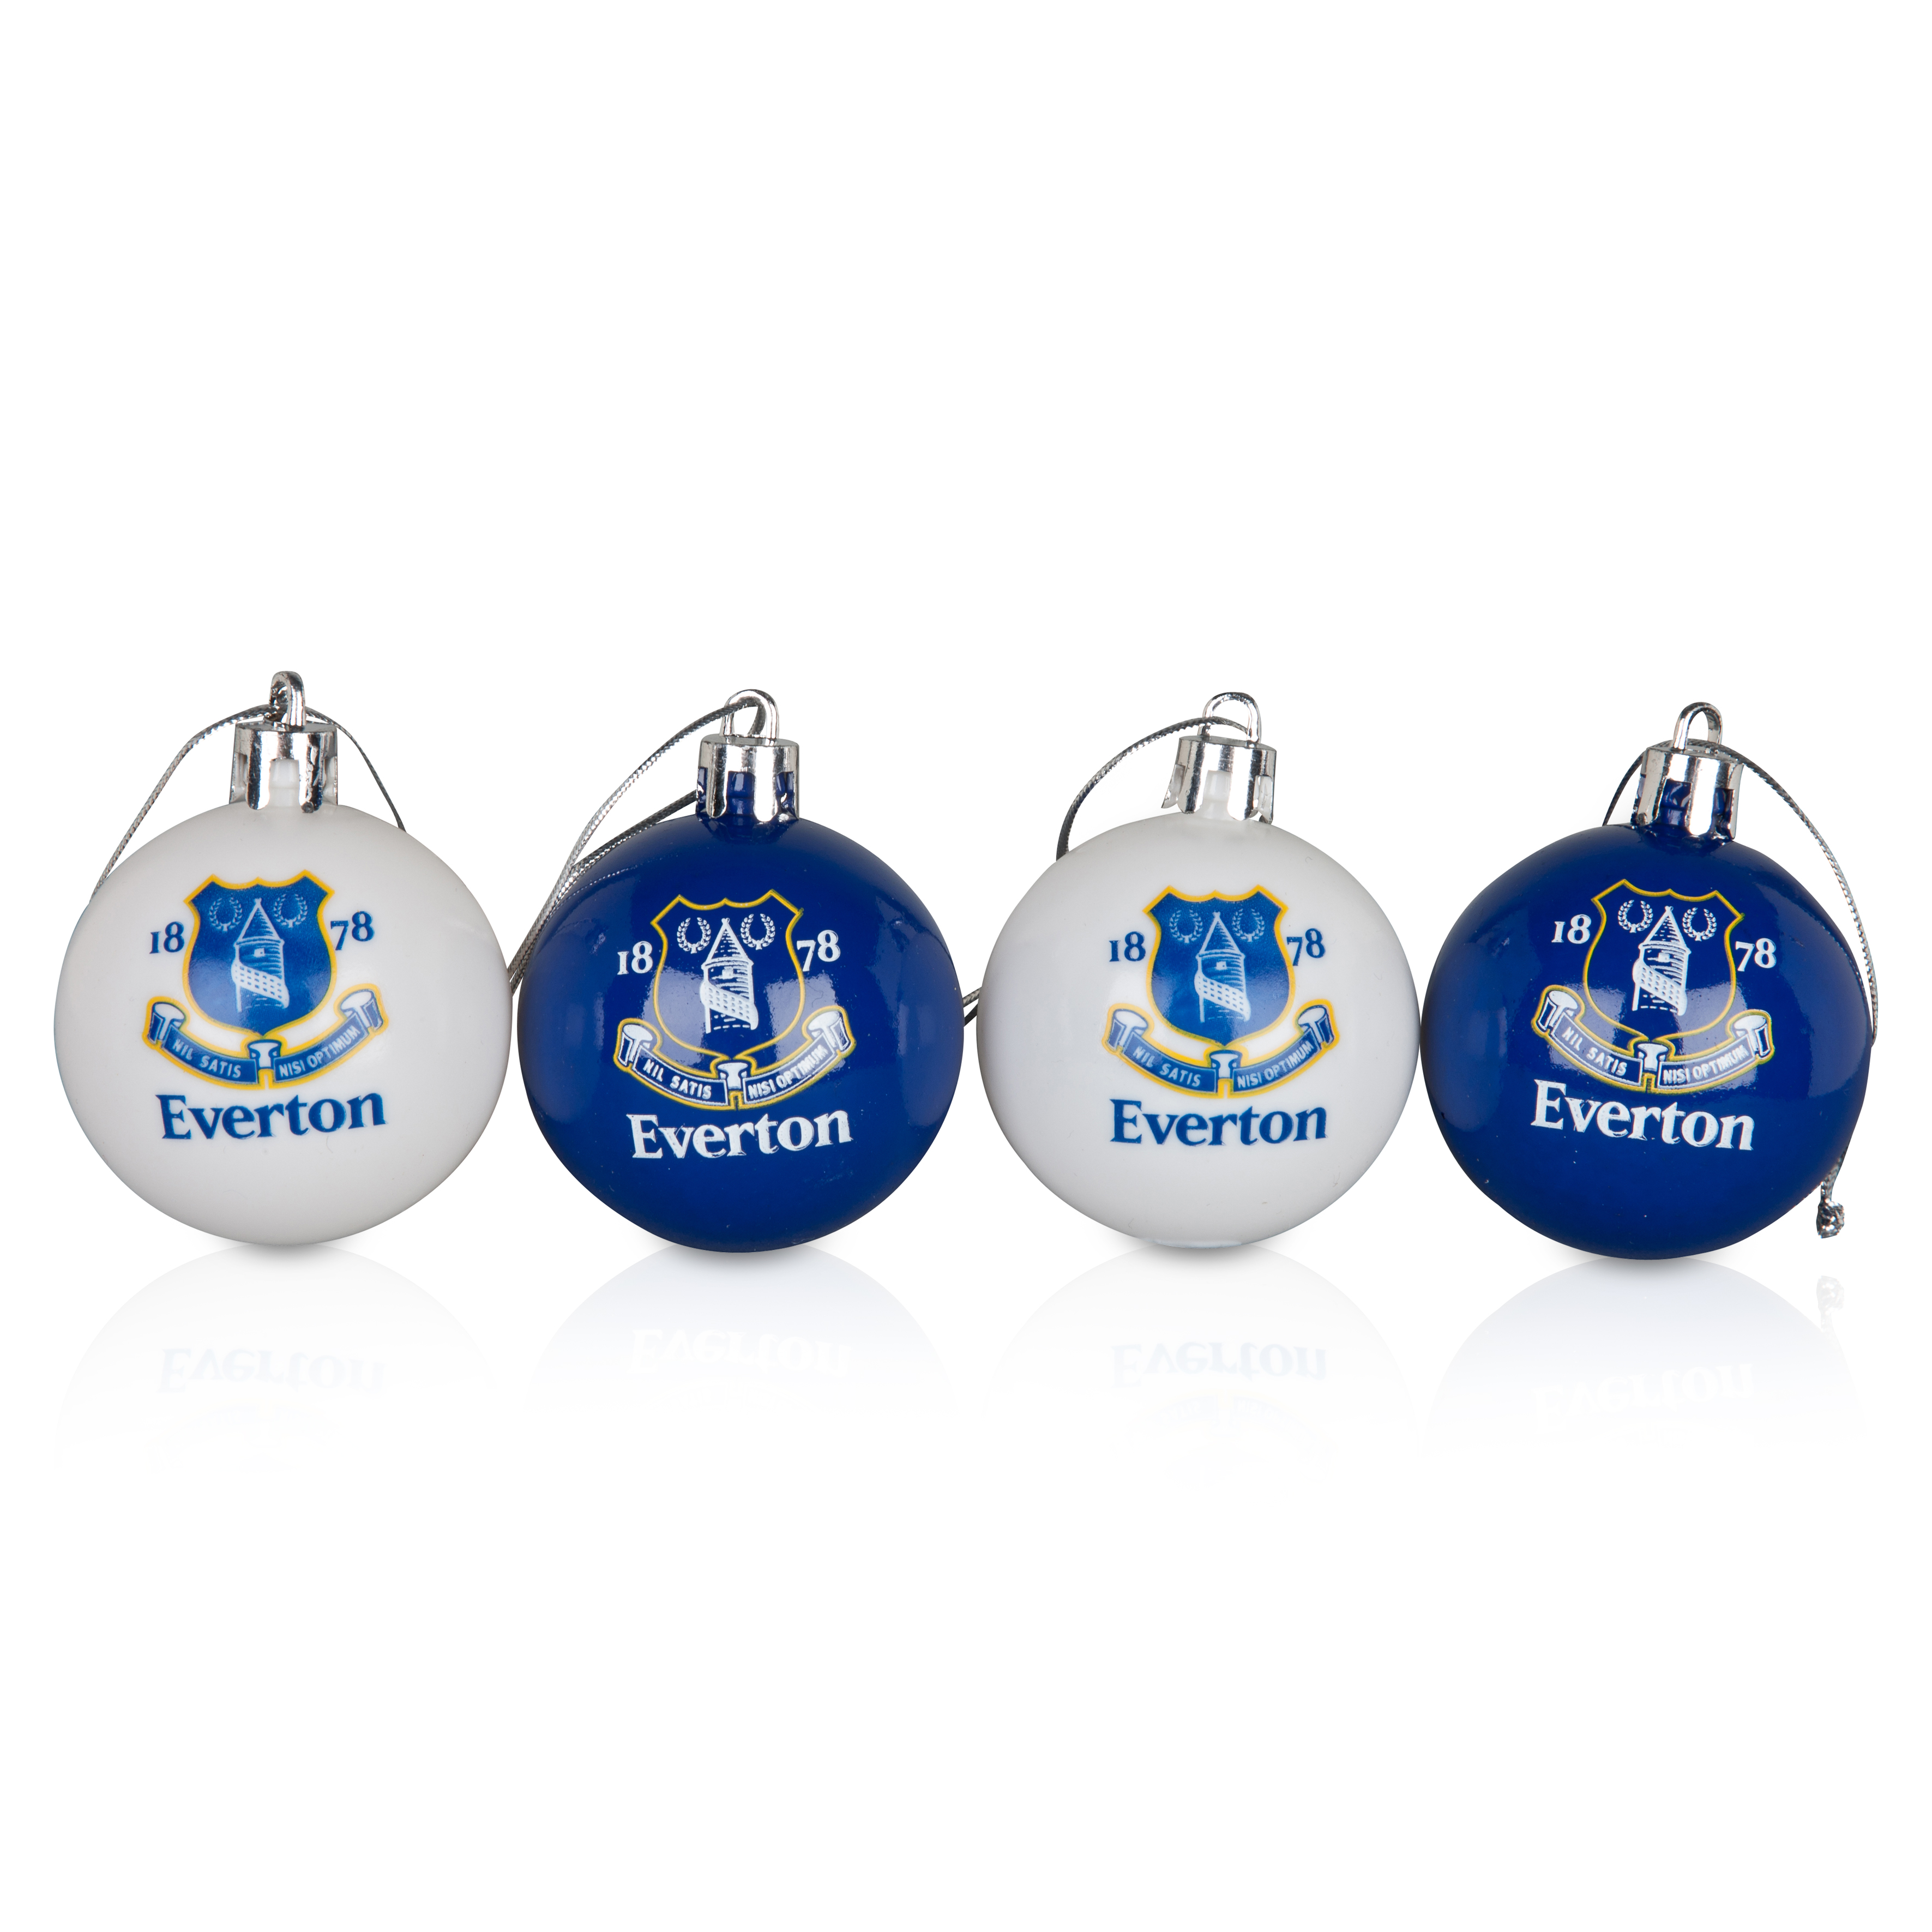 Everton 4 Pack of Plastic Baubles